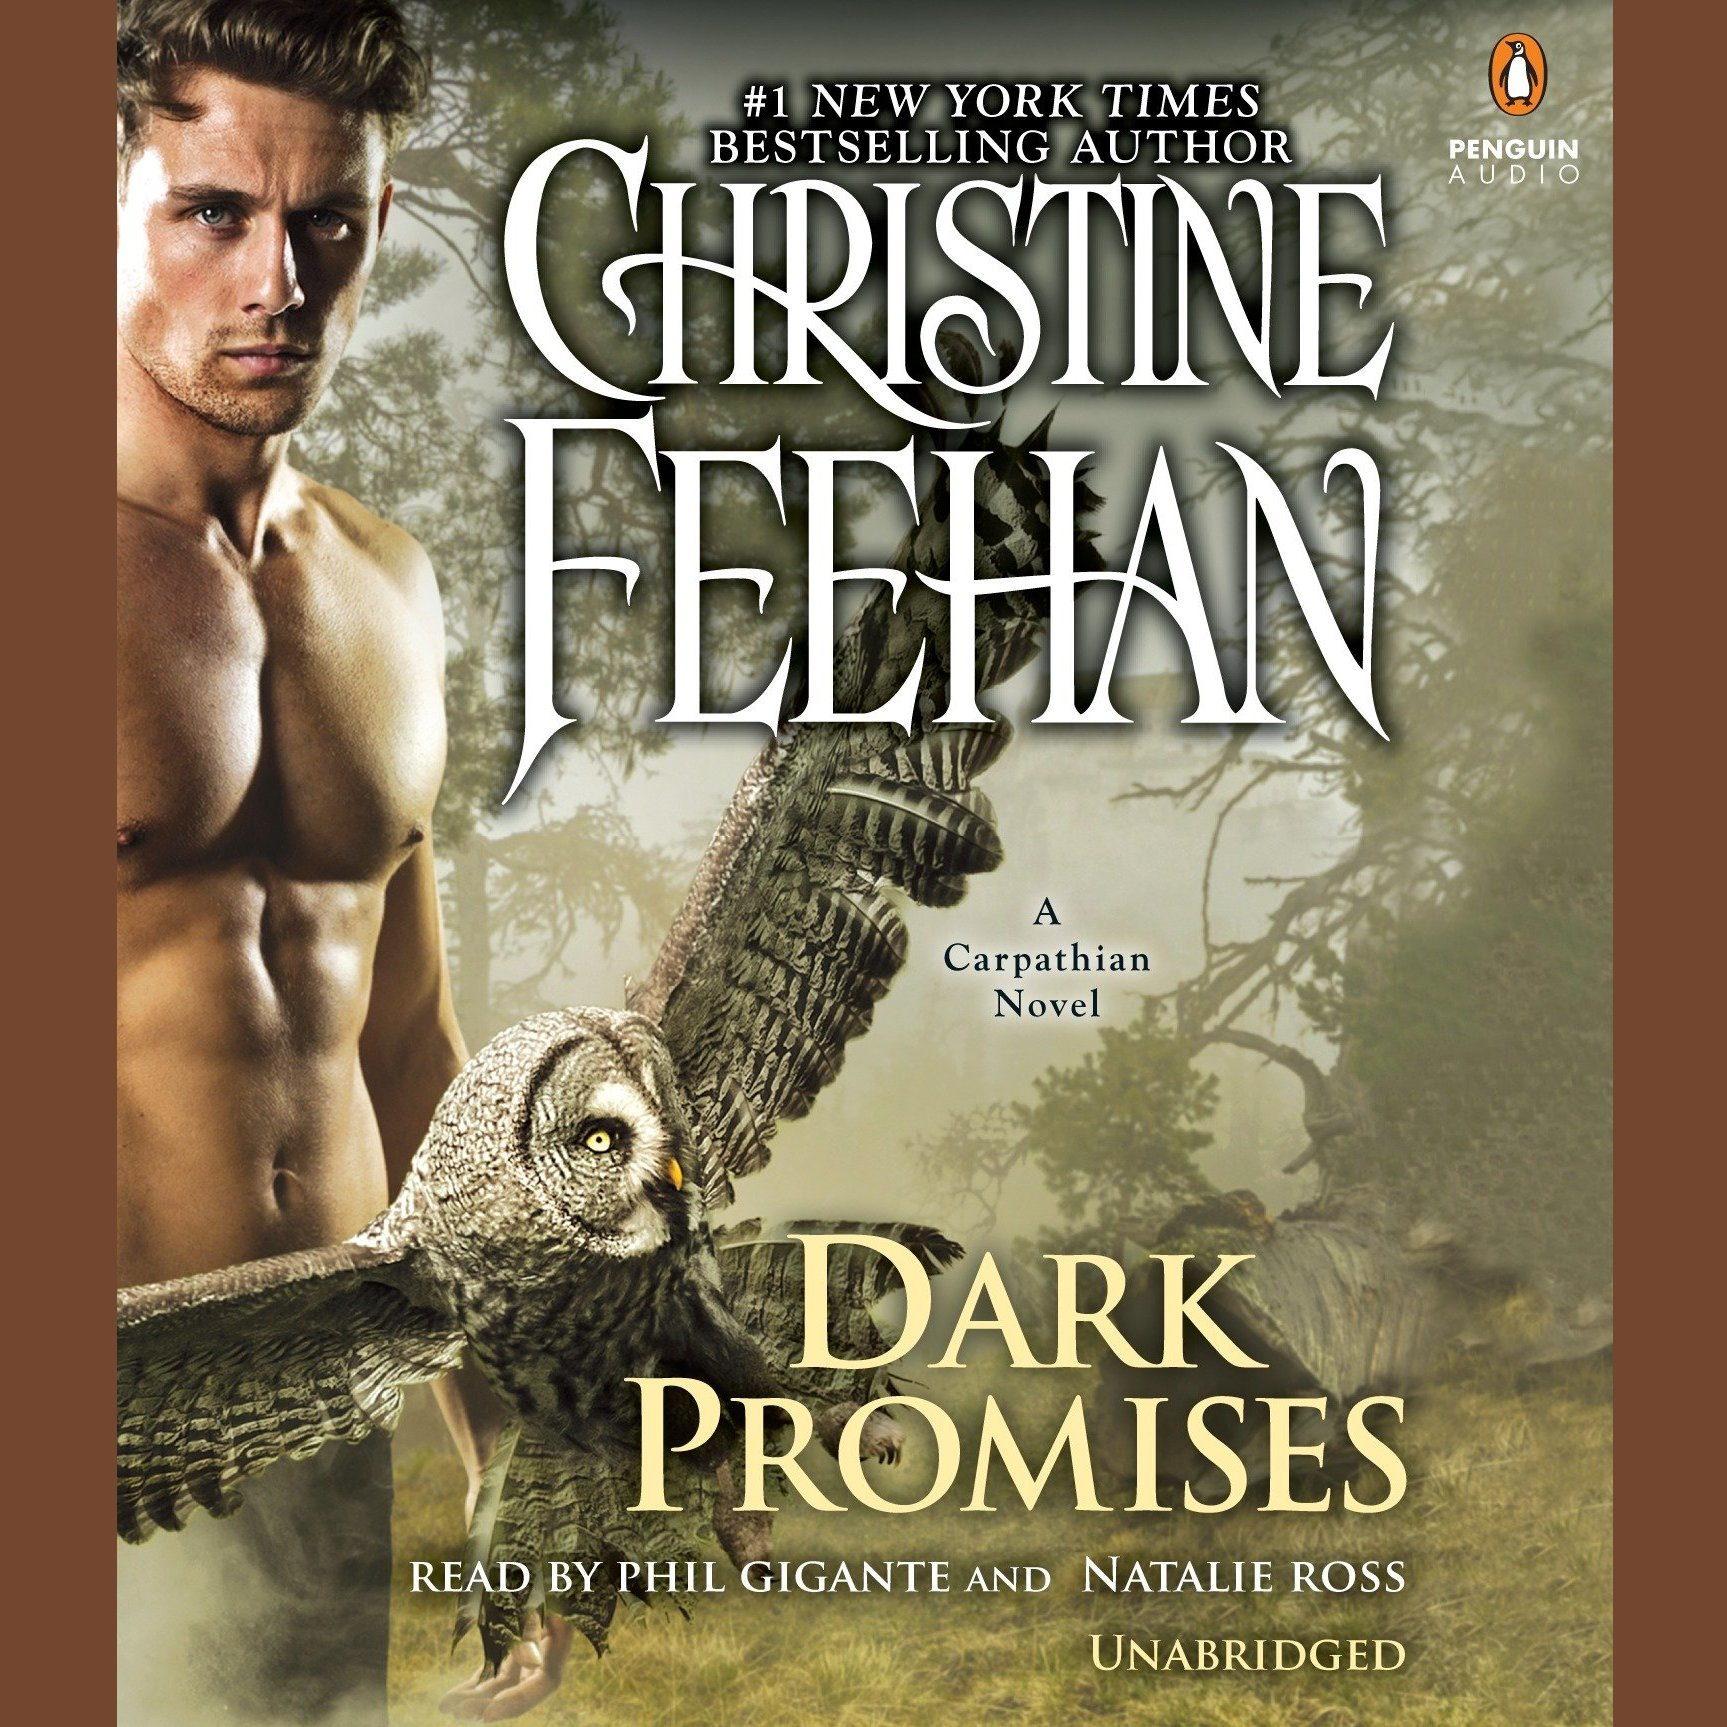 Printable Dark Promises: A Carpathian Novel Audiobook Cover Art